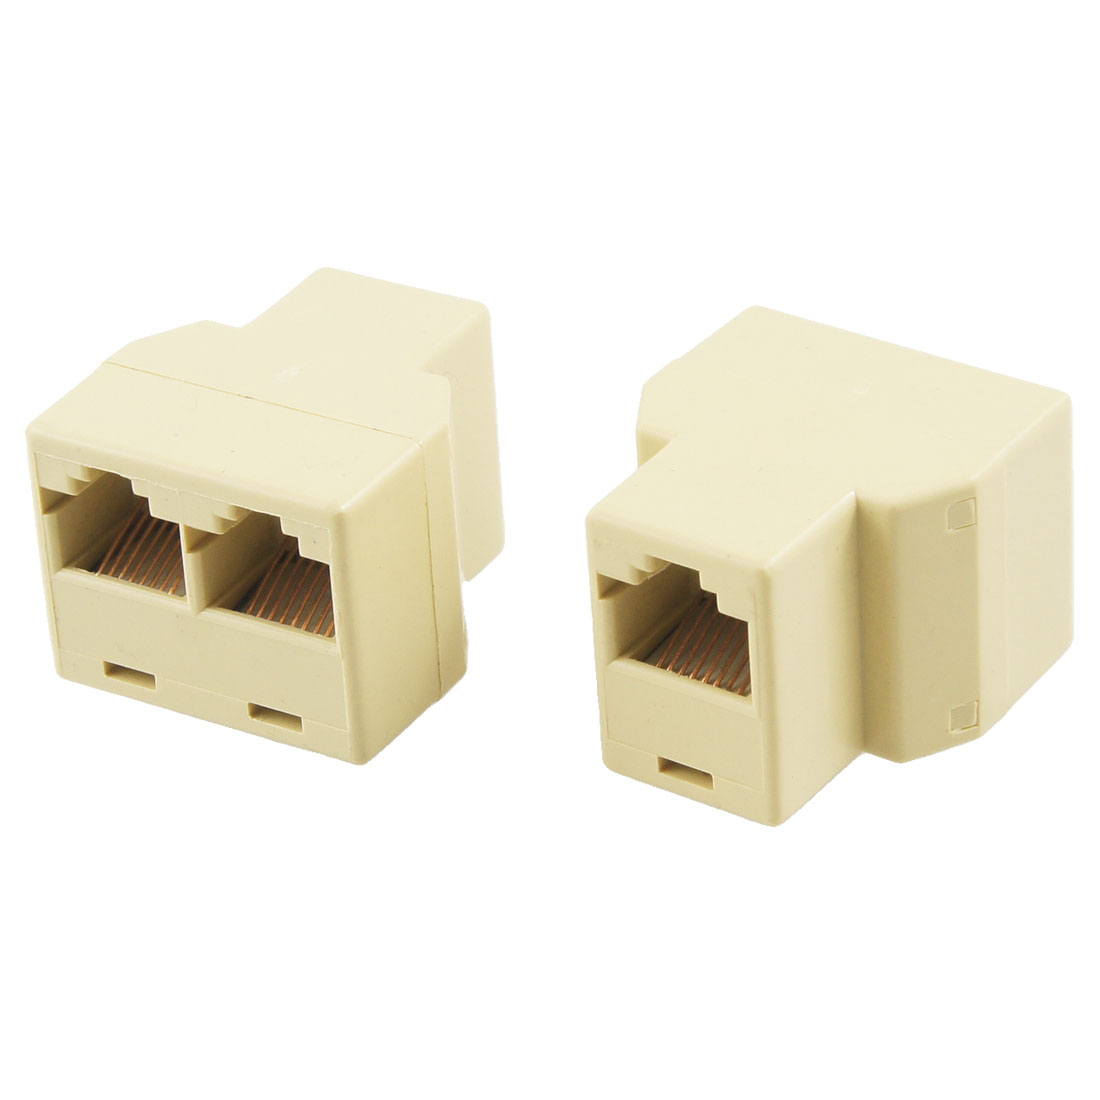 2 Pcs Khaki 3 Way RJ45 LAN Network Ethernet Splitter Connector